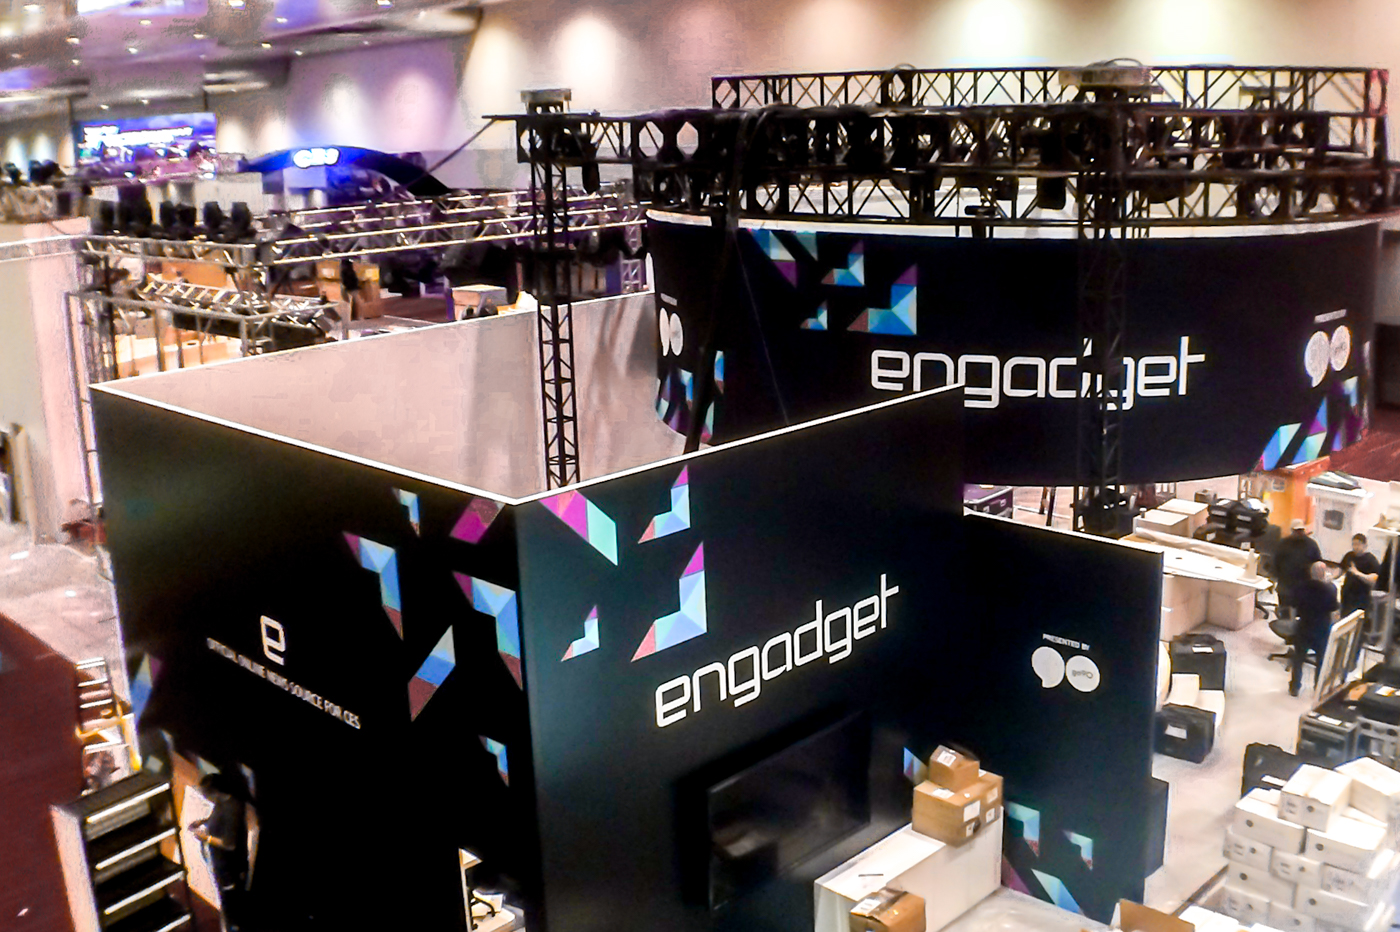 The Engadget CES stage show kicks off at 1:30PM ET tomorrow